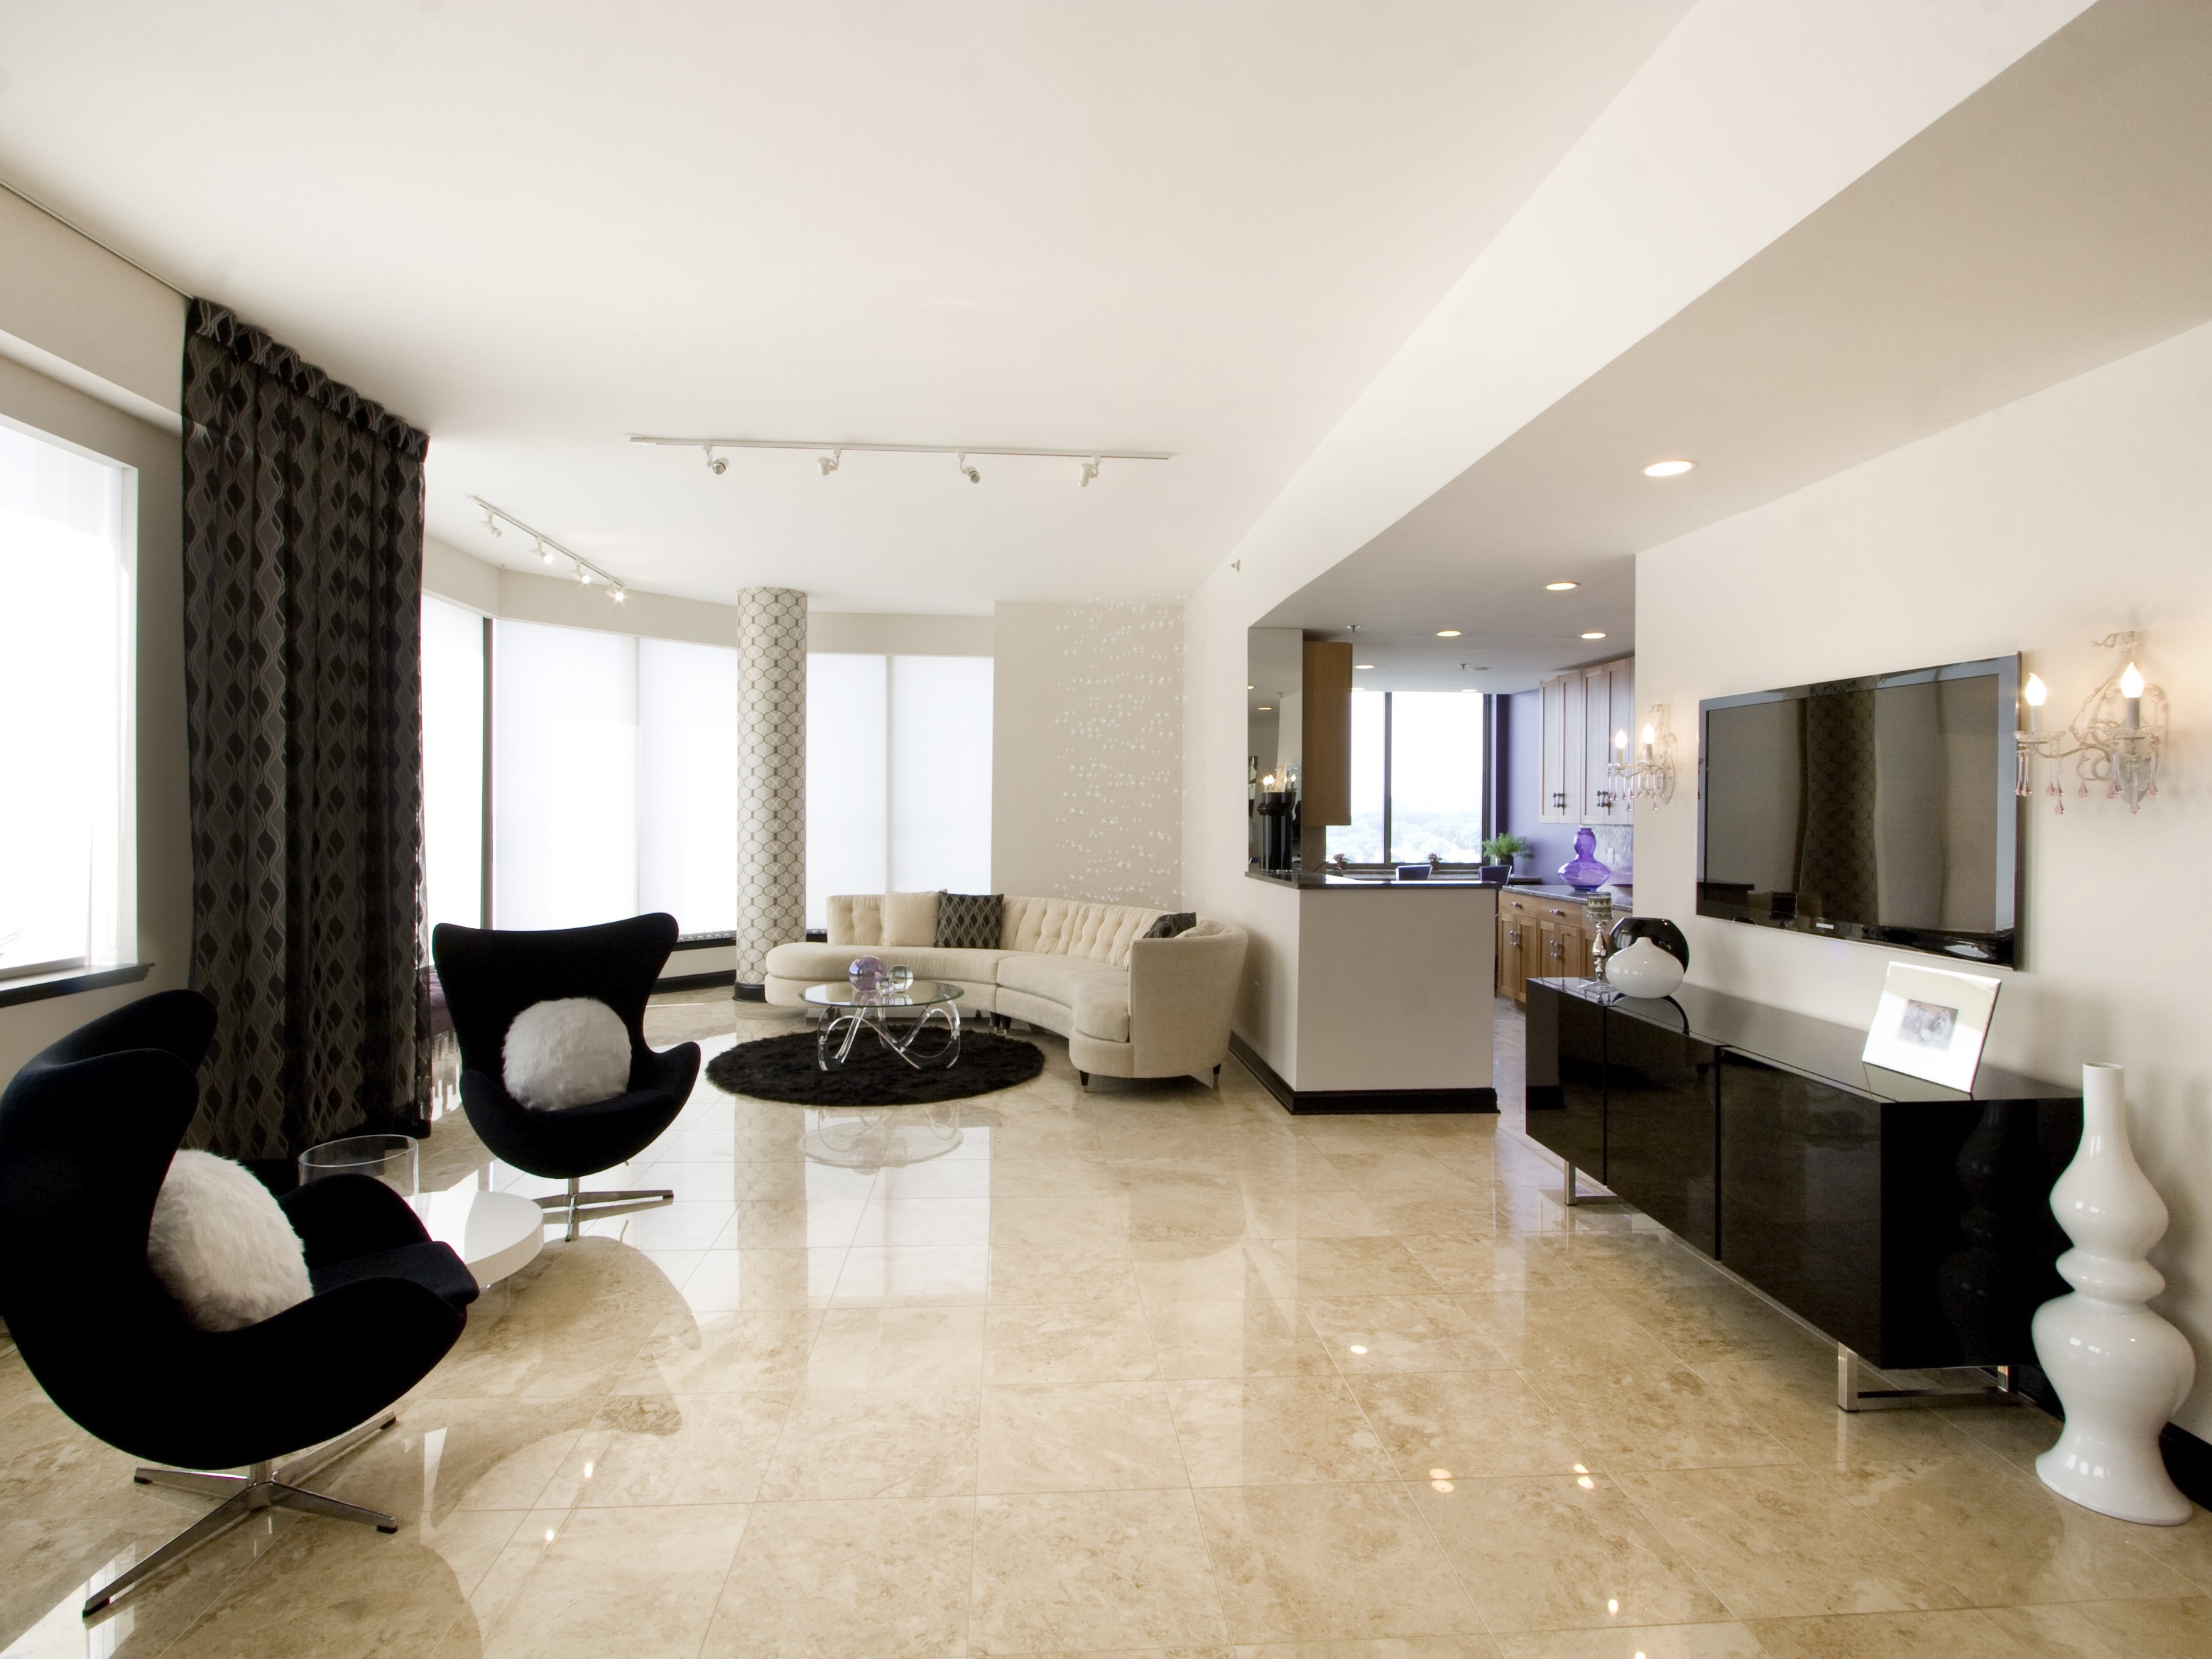 Living Room Marble Flooring For Luxury Nuance (Image 4 of 15)